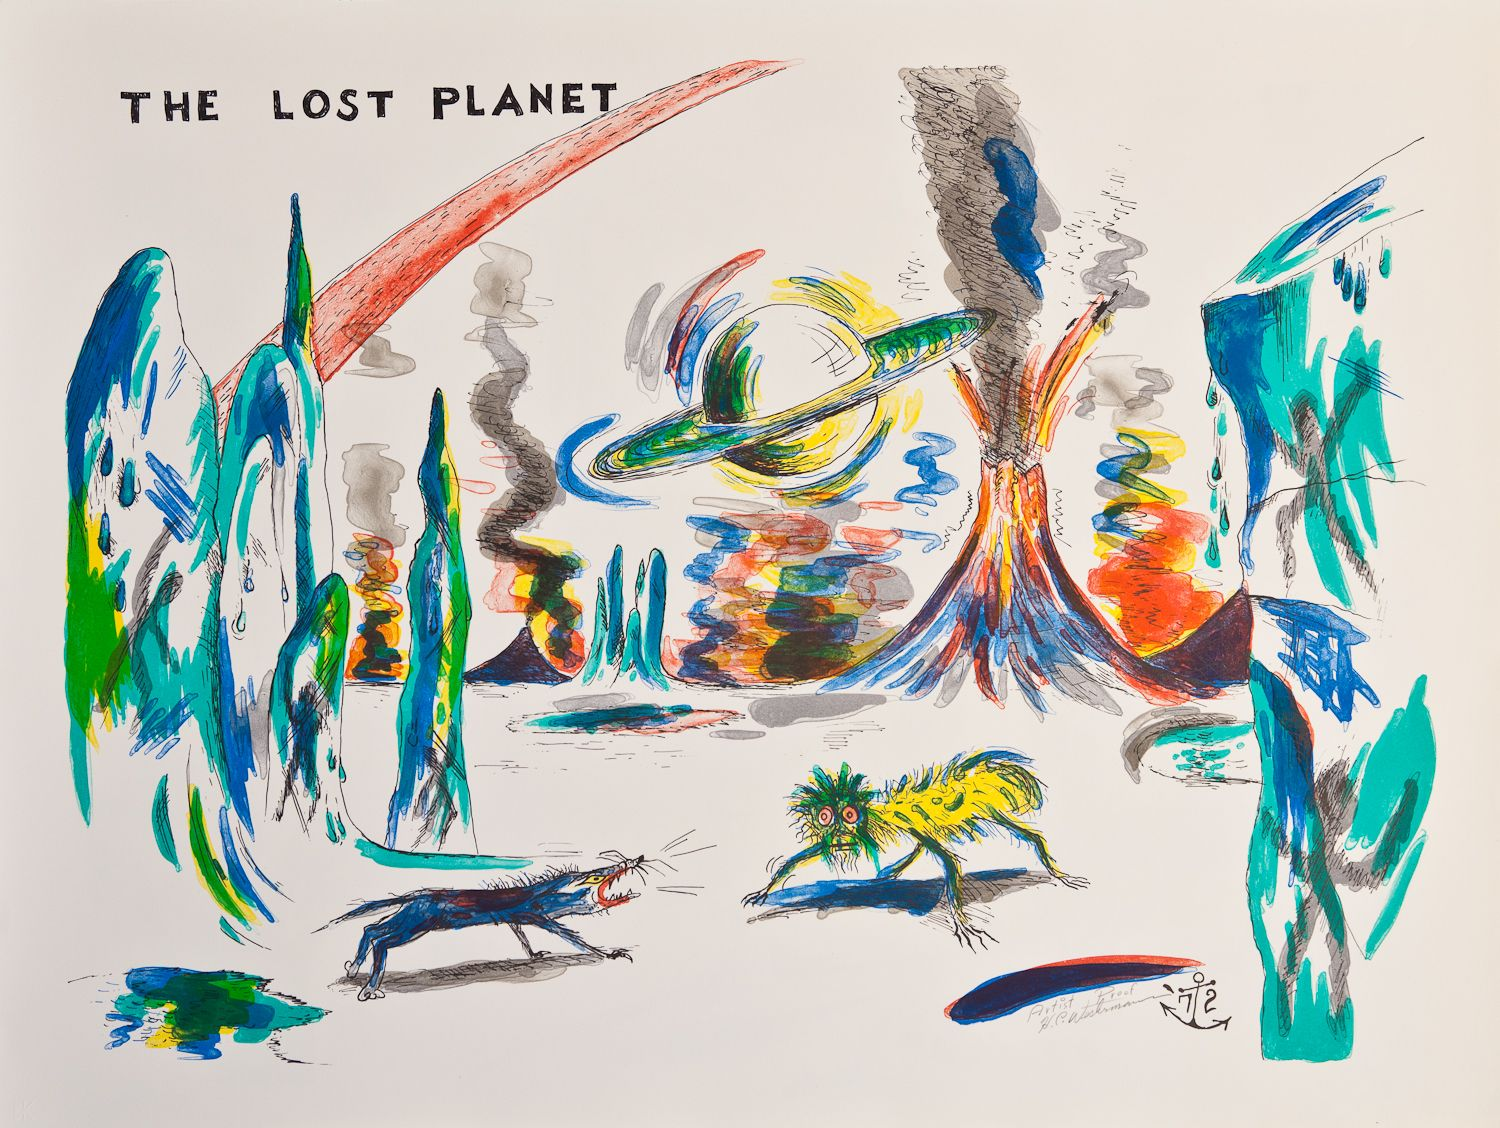 H.C. Westermann, The Lost Planet